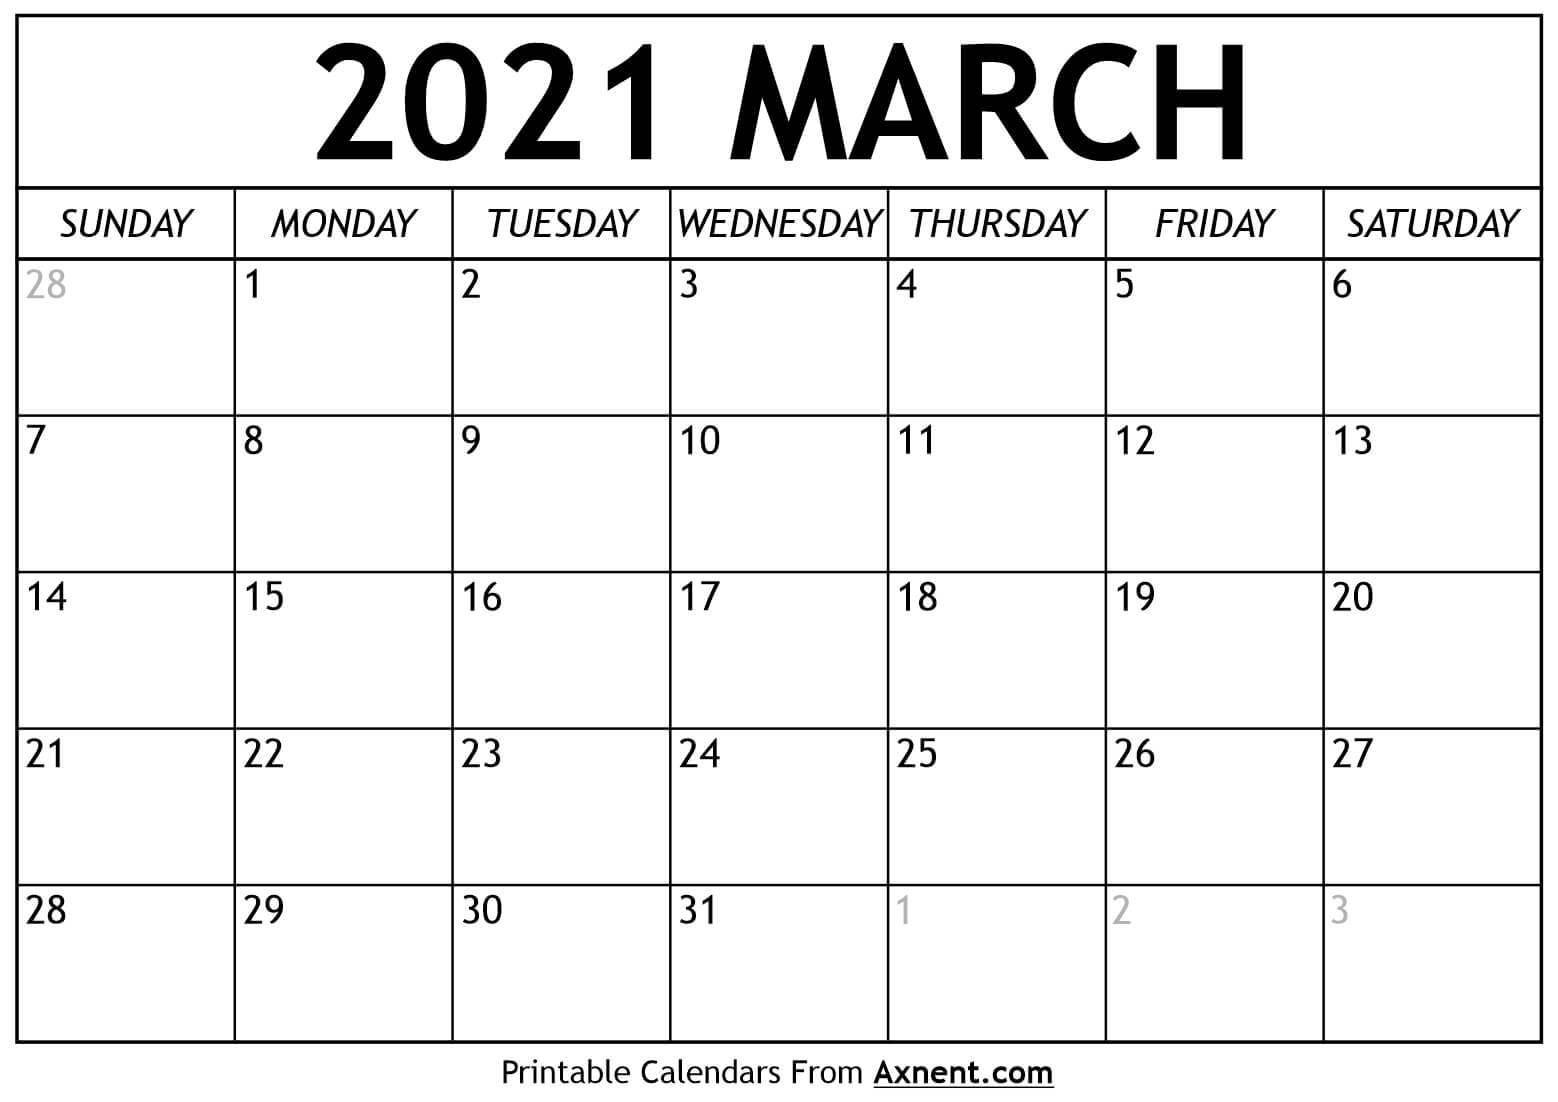 Printable March 2021 Calendar Template   Time Management Tools